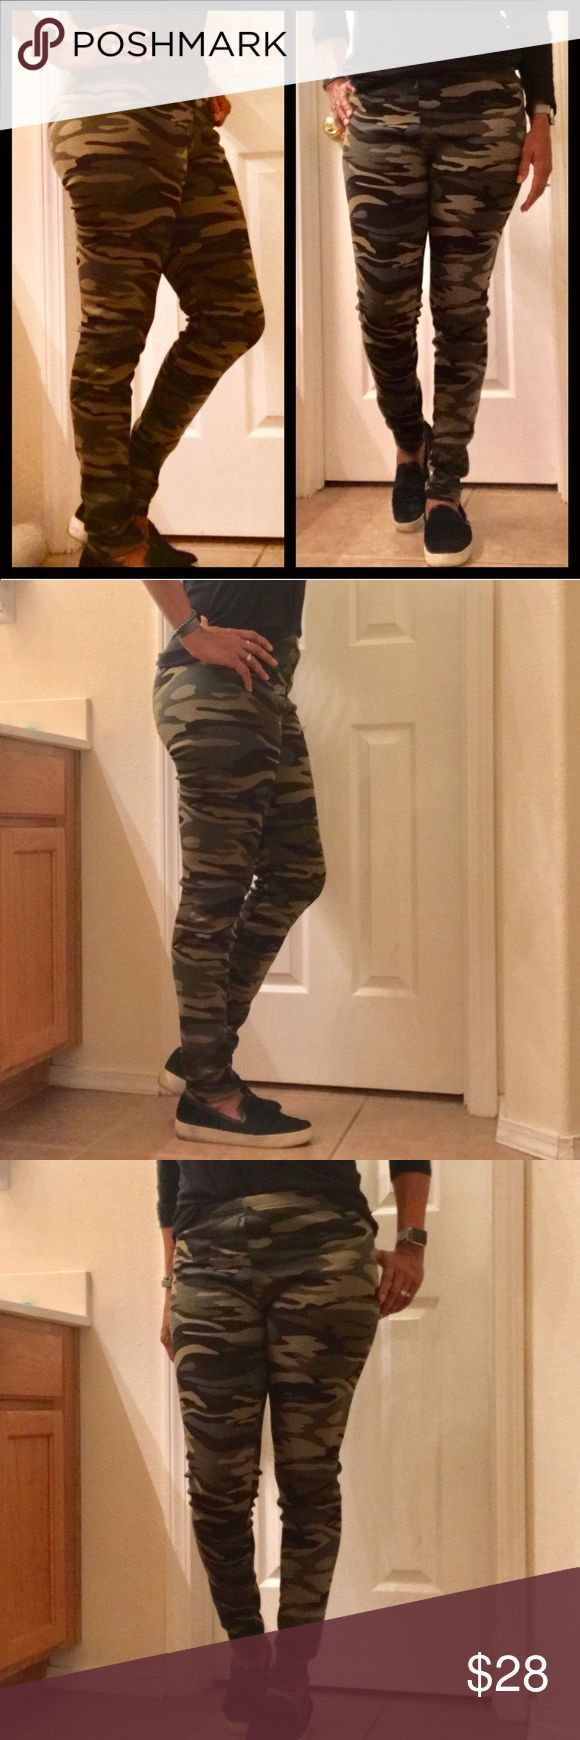 Fleece Lined Camo Leggings Perfect timing for these trend right leggings. These are made with a soft, cozy fleece lining.  Great quality with a nice weight fabric.🎉🎉  Fabric: 97% polyester, 3% spandex  Internal Lining: 100% polyester  S/M= size 2/6 L/XL= size 8/10 * Model is size 8  🚫Trades ✅Price firm unless bundled Fresh Fashion Boutique Pants Leggings